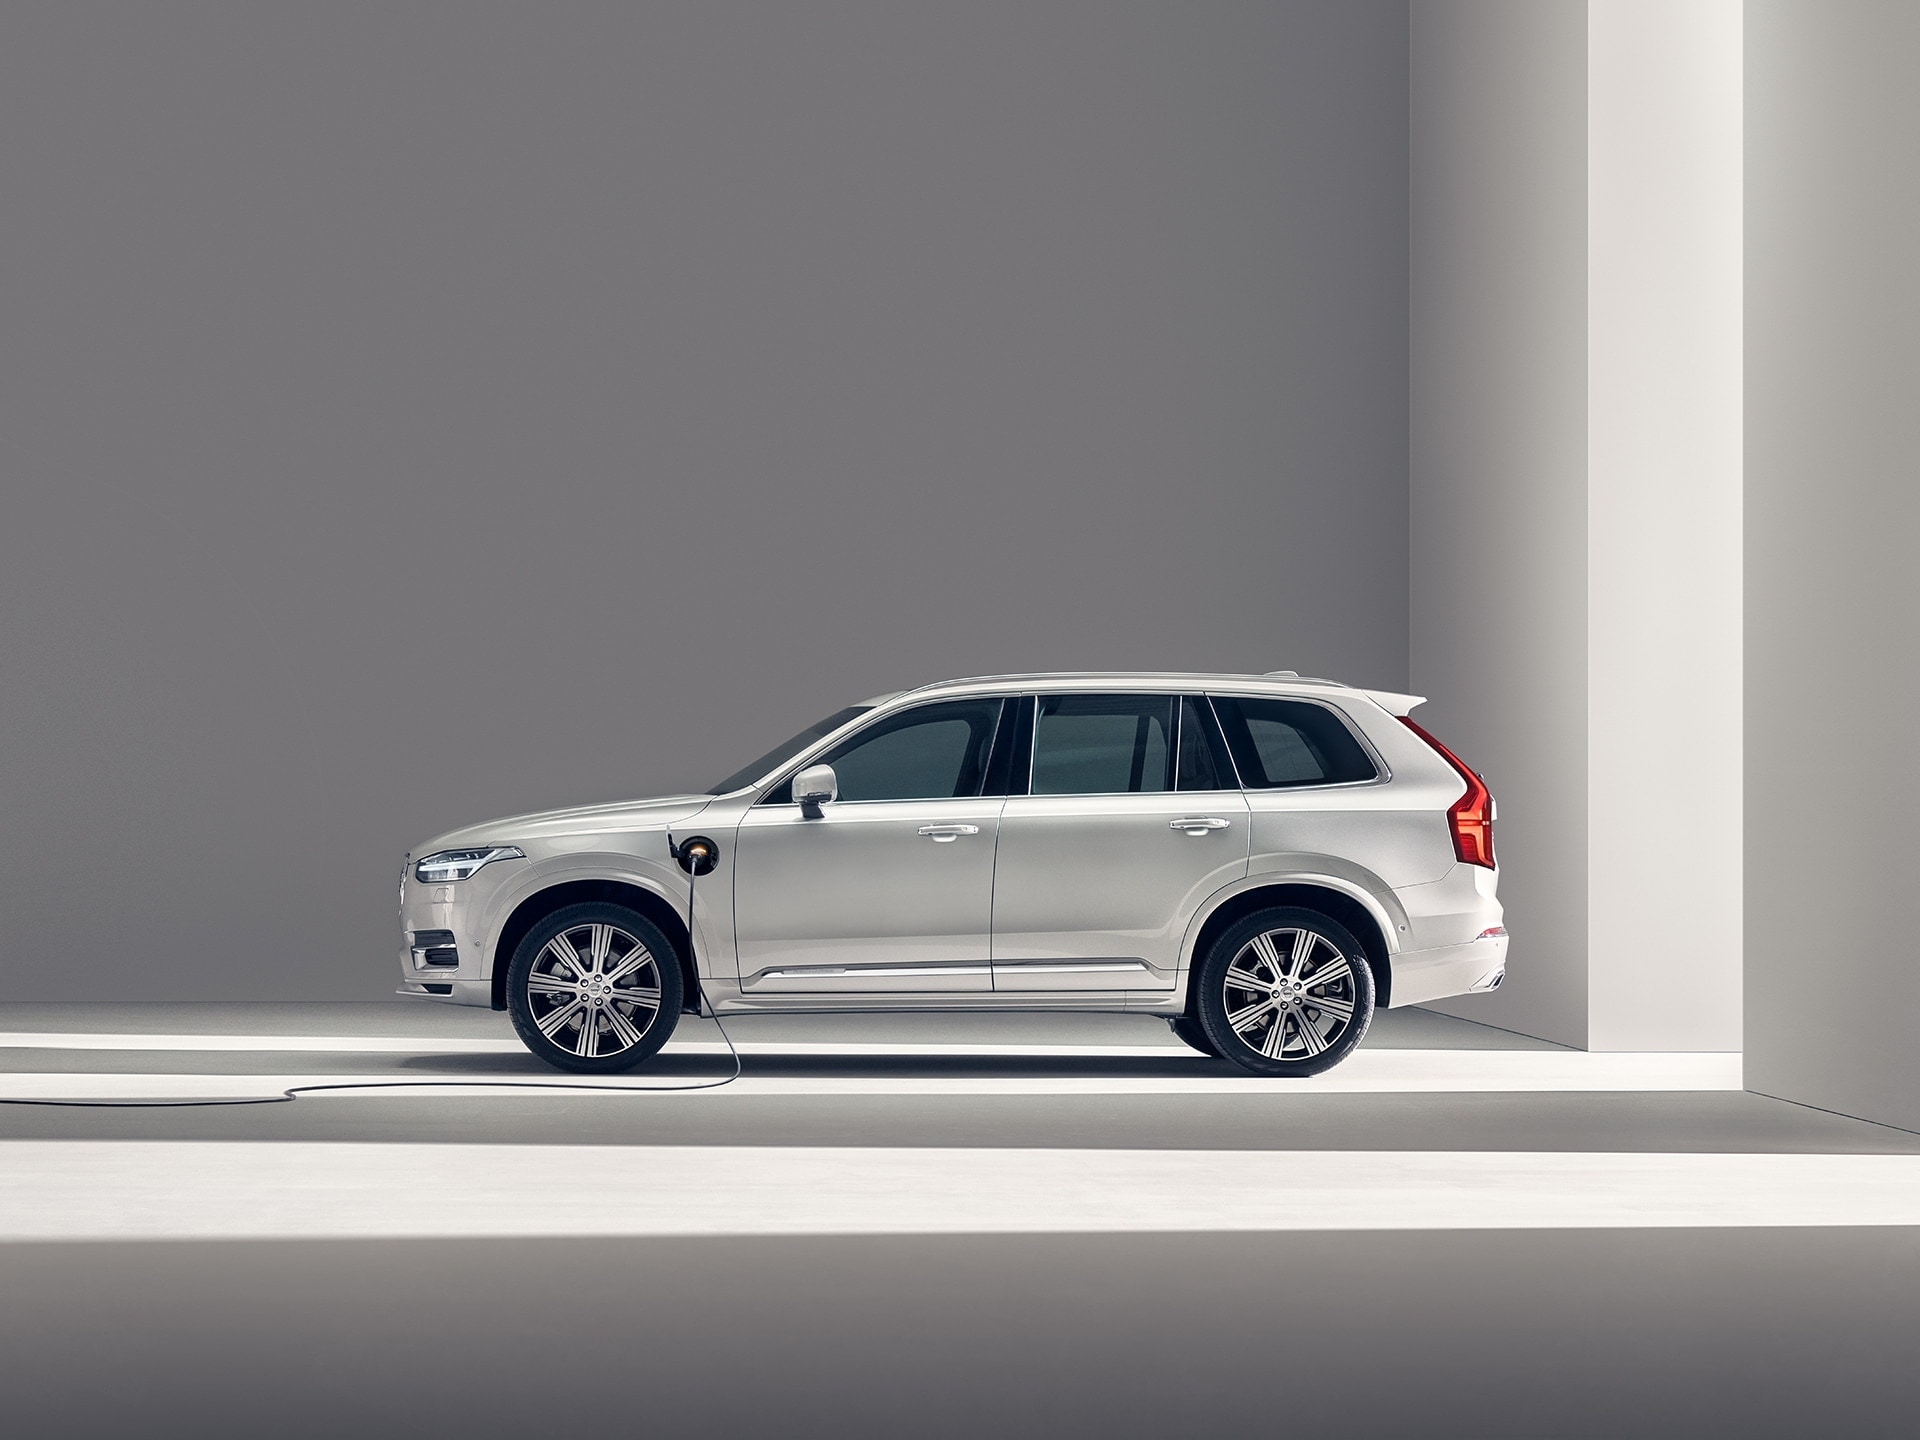 SUV Volvo XC90 Recharge en charge